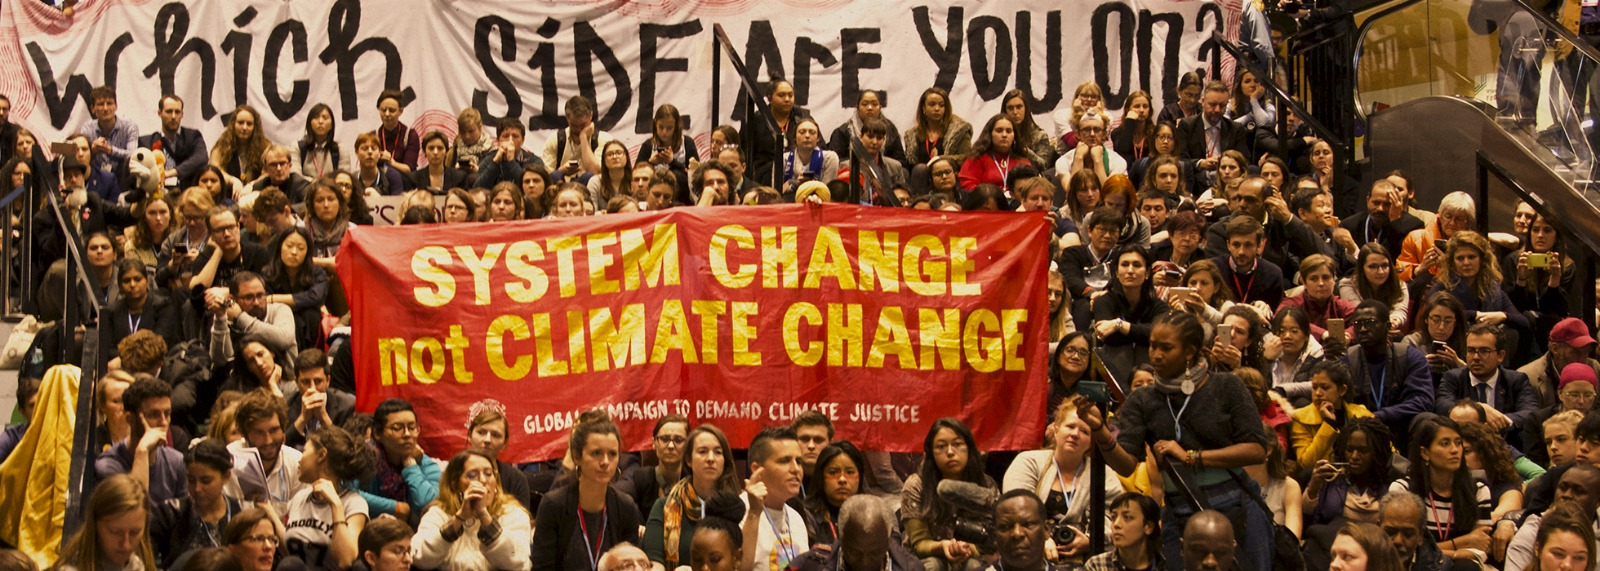 People in over 150 countries get ready to mobilise against climate change inaction